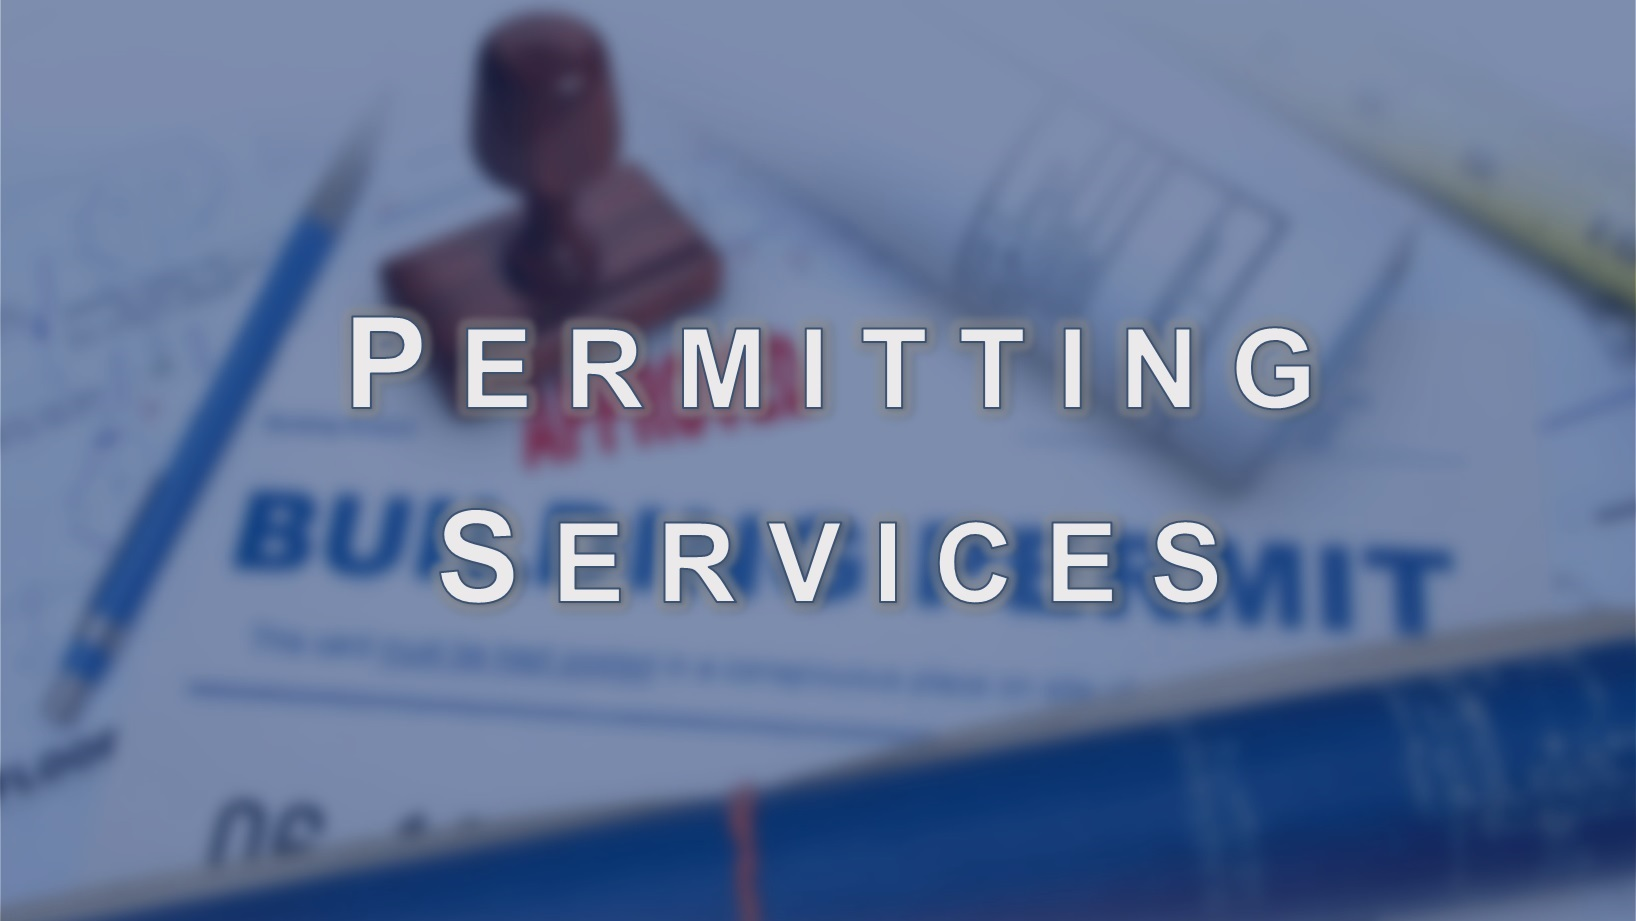 5.1  Permitting Services